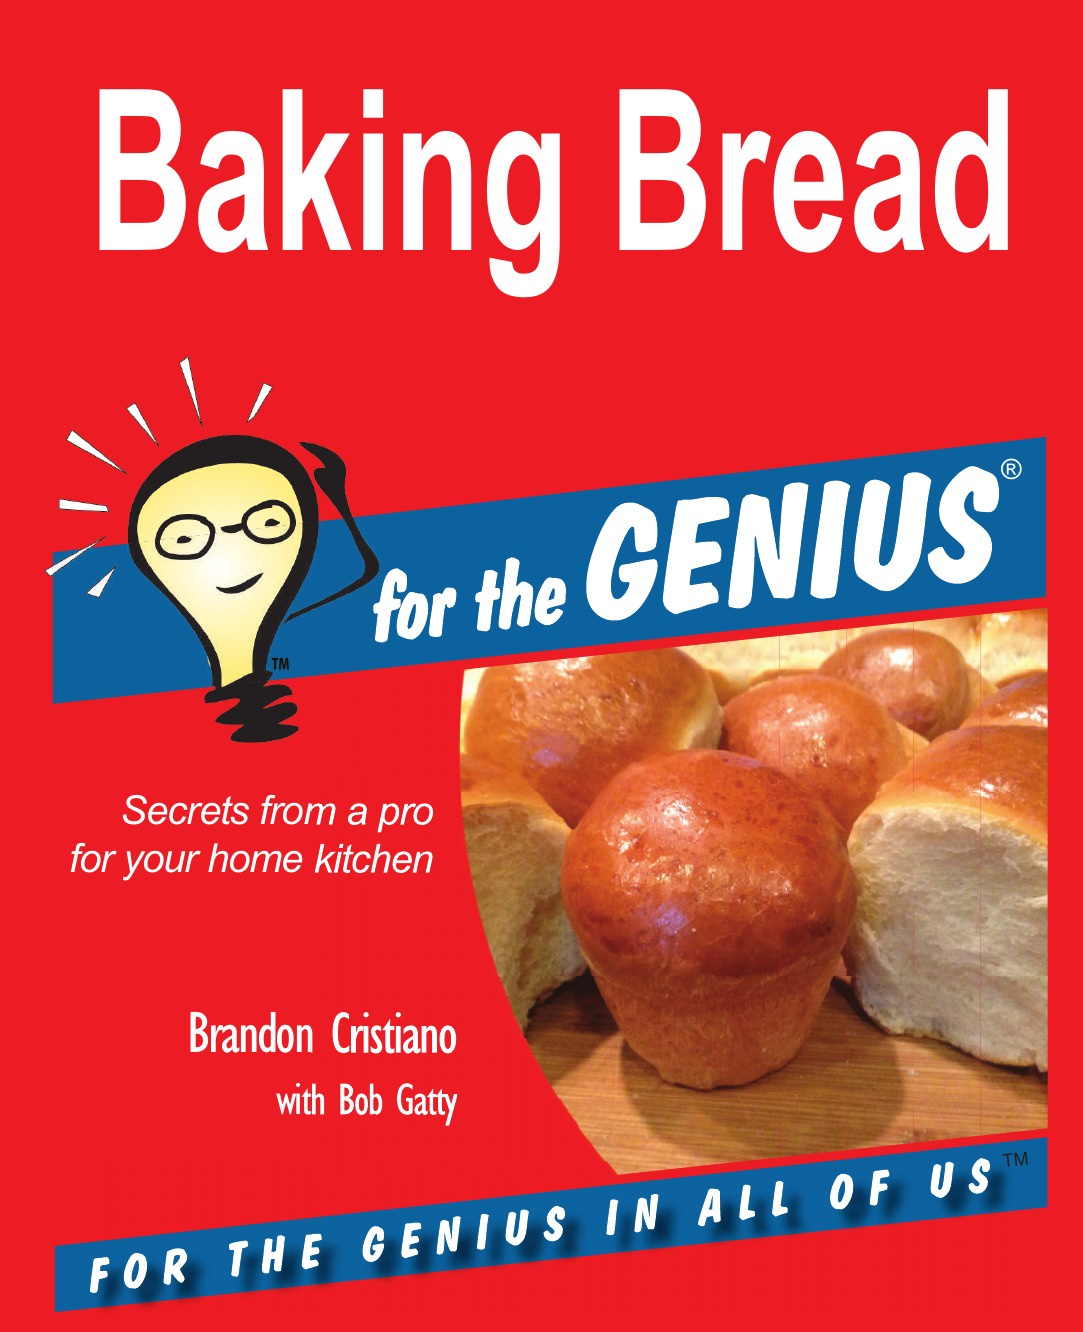 Brandon Cristiano, Bob Gatty Baking Bread for the GENIUS beijing